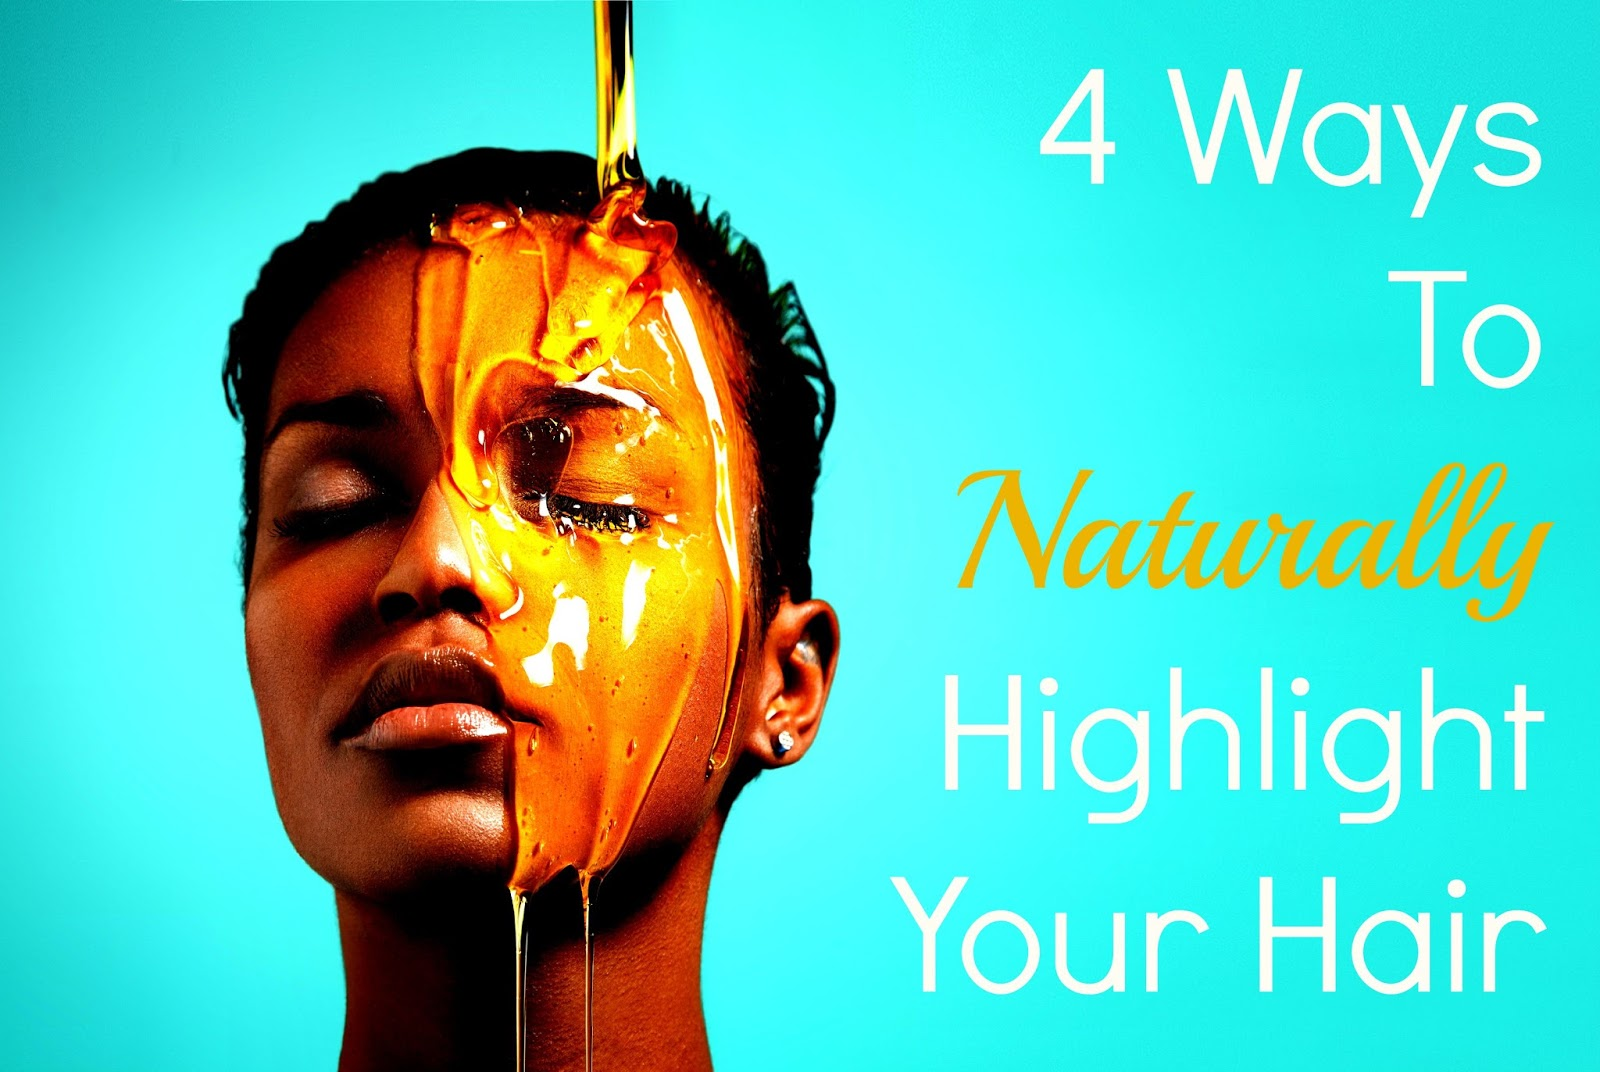 4 Ways To Naturally Highlight Your Hair Seriously Natural